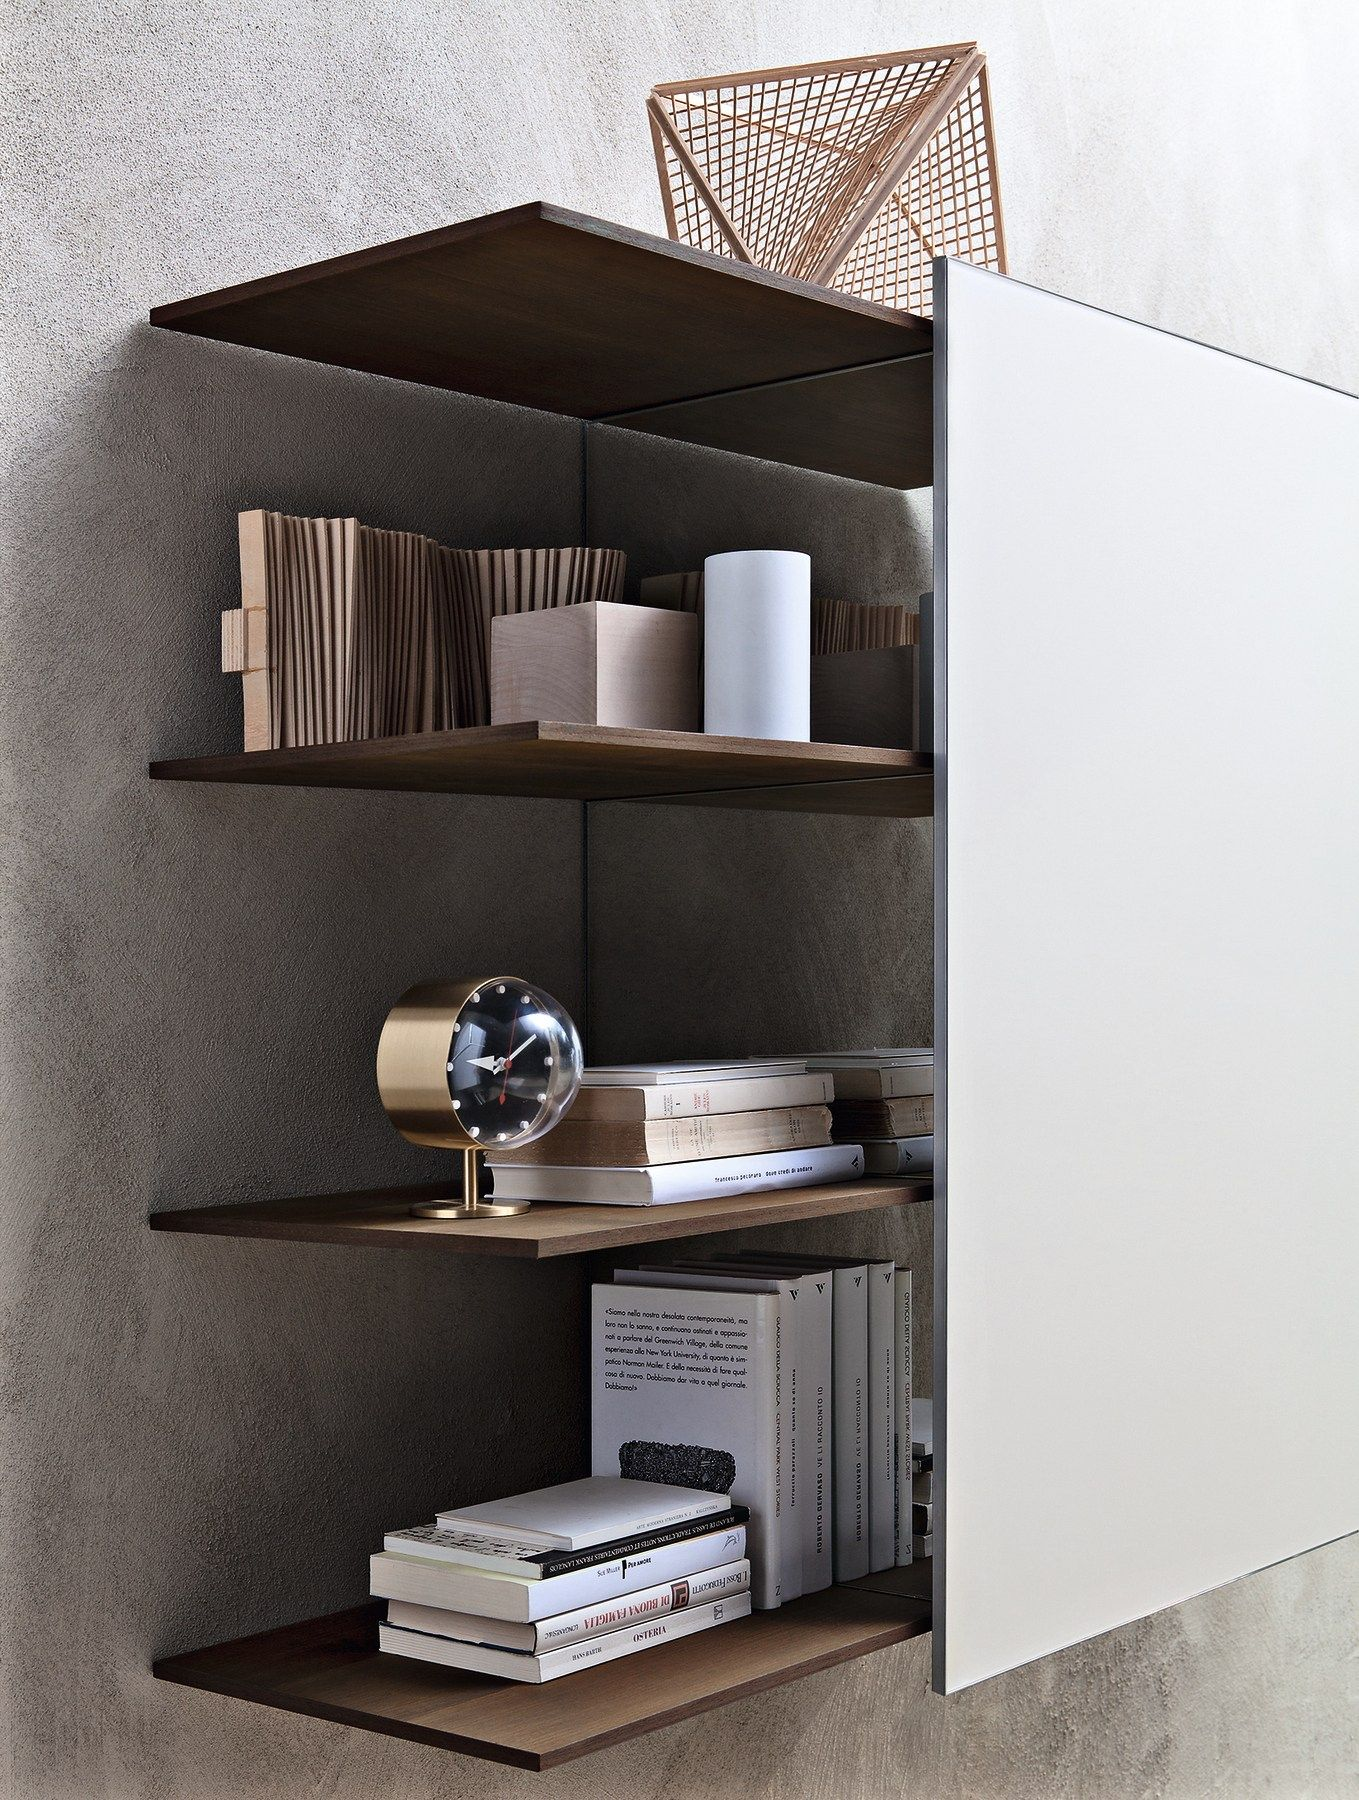 Disenos Vor Muebles - Mueble Modular De Pared Composable Pass Word By Molteni C [mjhdah]https://i.pinimg.com/originals/c7/ee/67/c7ee6788af1a173e0c384ae68747c8f4.jpg